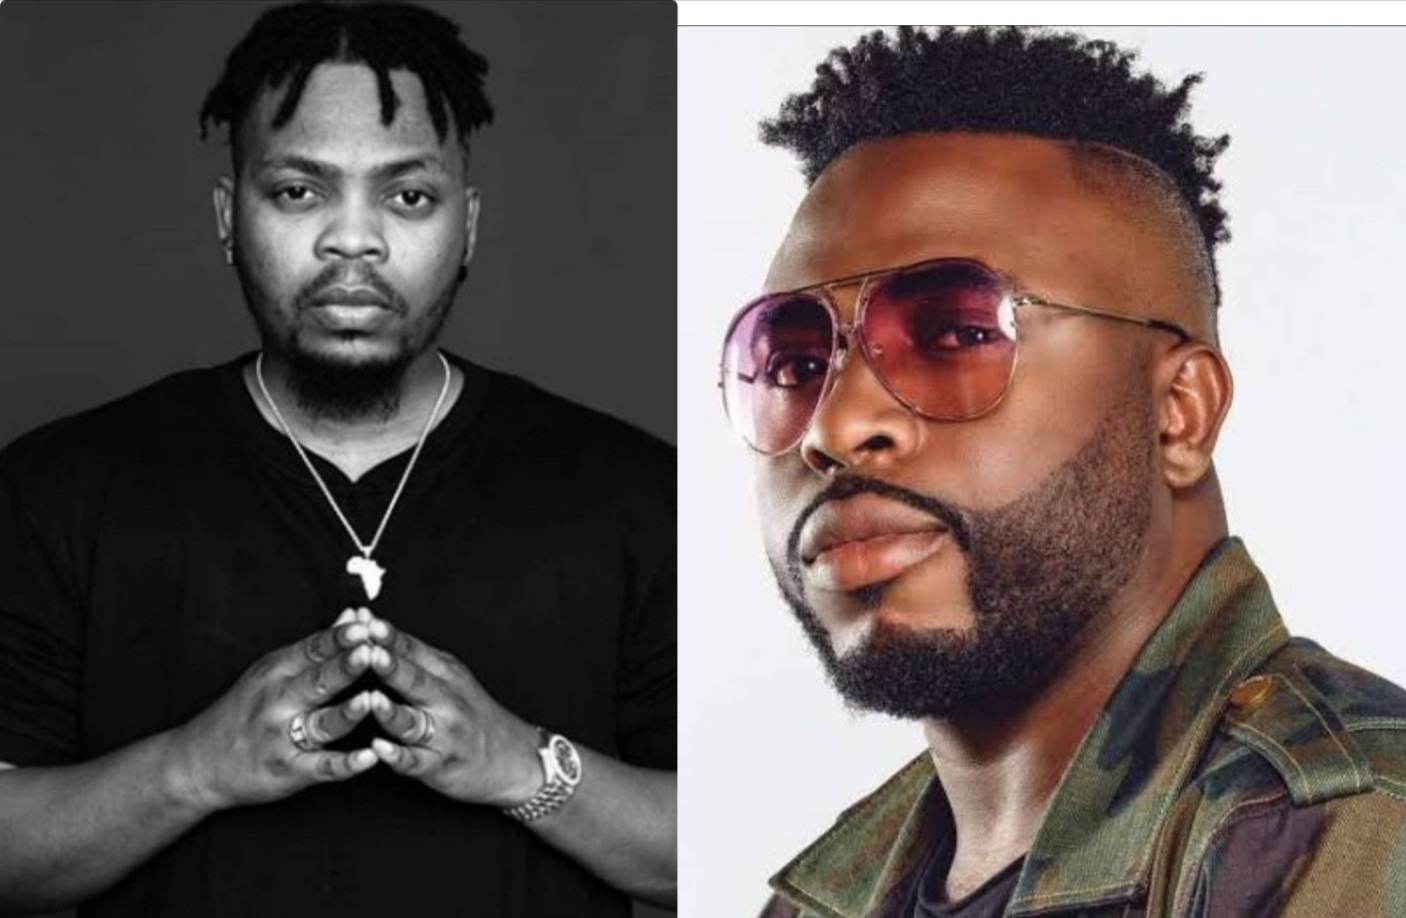 Olamide has helped lots of people, he shouldn't be compared to anyone Ace Producer Samklef says